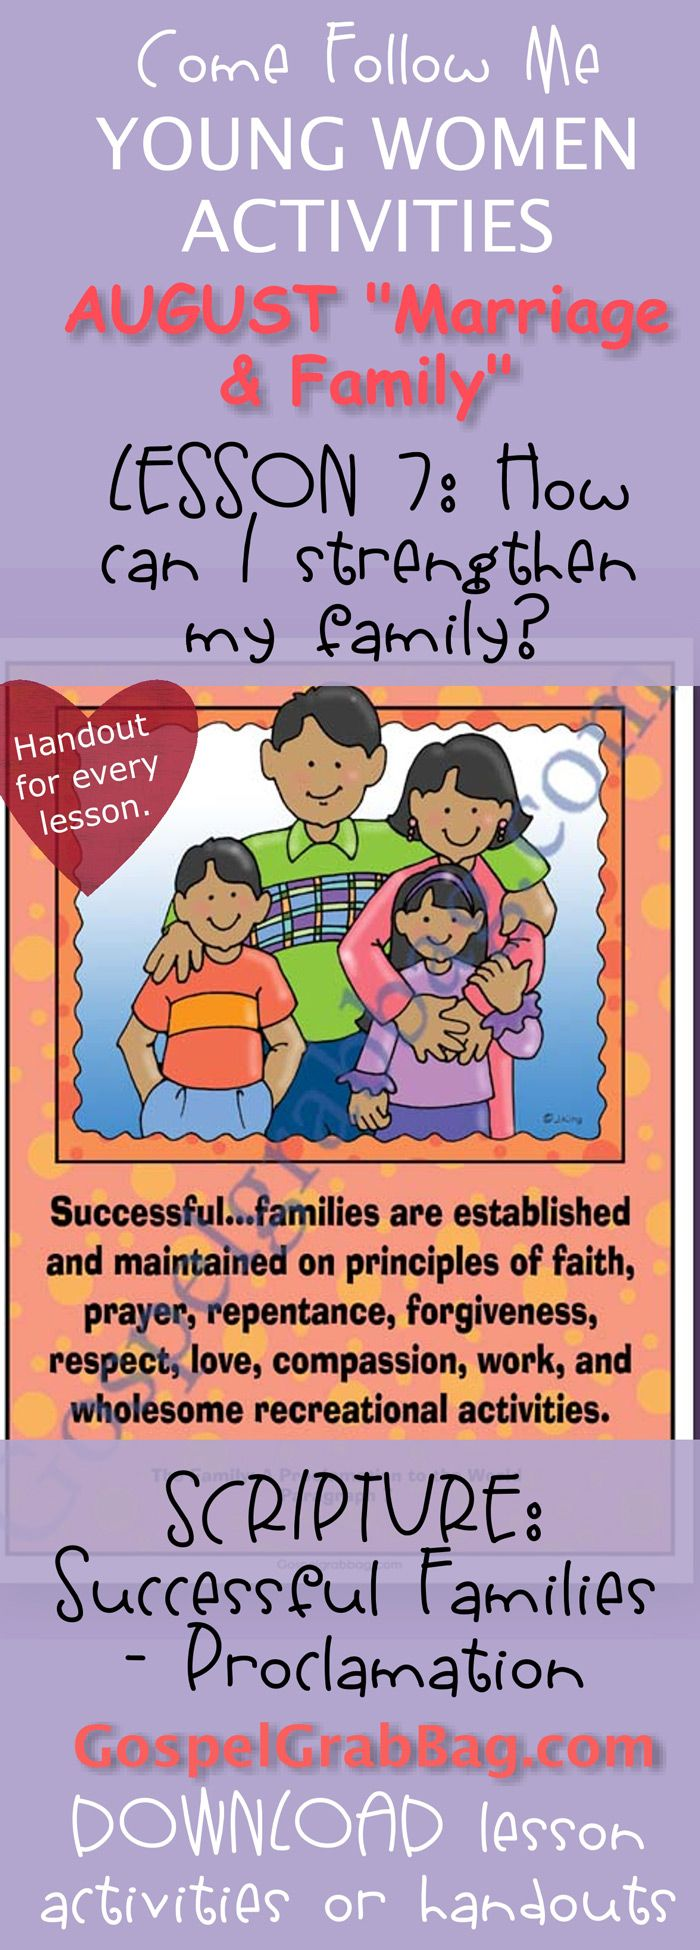 "STRENGTHEN FAMILY: Come Follow Me – LDS Young Women Activities, August Theme: ""Marriage and Family"", Lesson #7 How can I strengthen my family? handout for every lesson, SCRIPTURE POSTER / CARDS: Success at Home – ""The Family: A Proclamation to the World"" - handouts to download from gospelgrabbag.com"